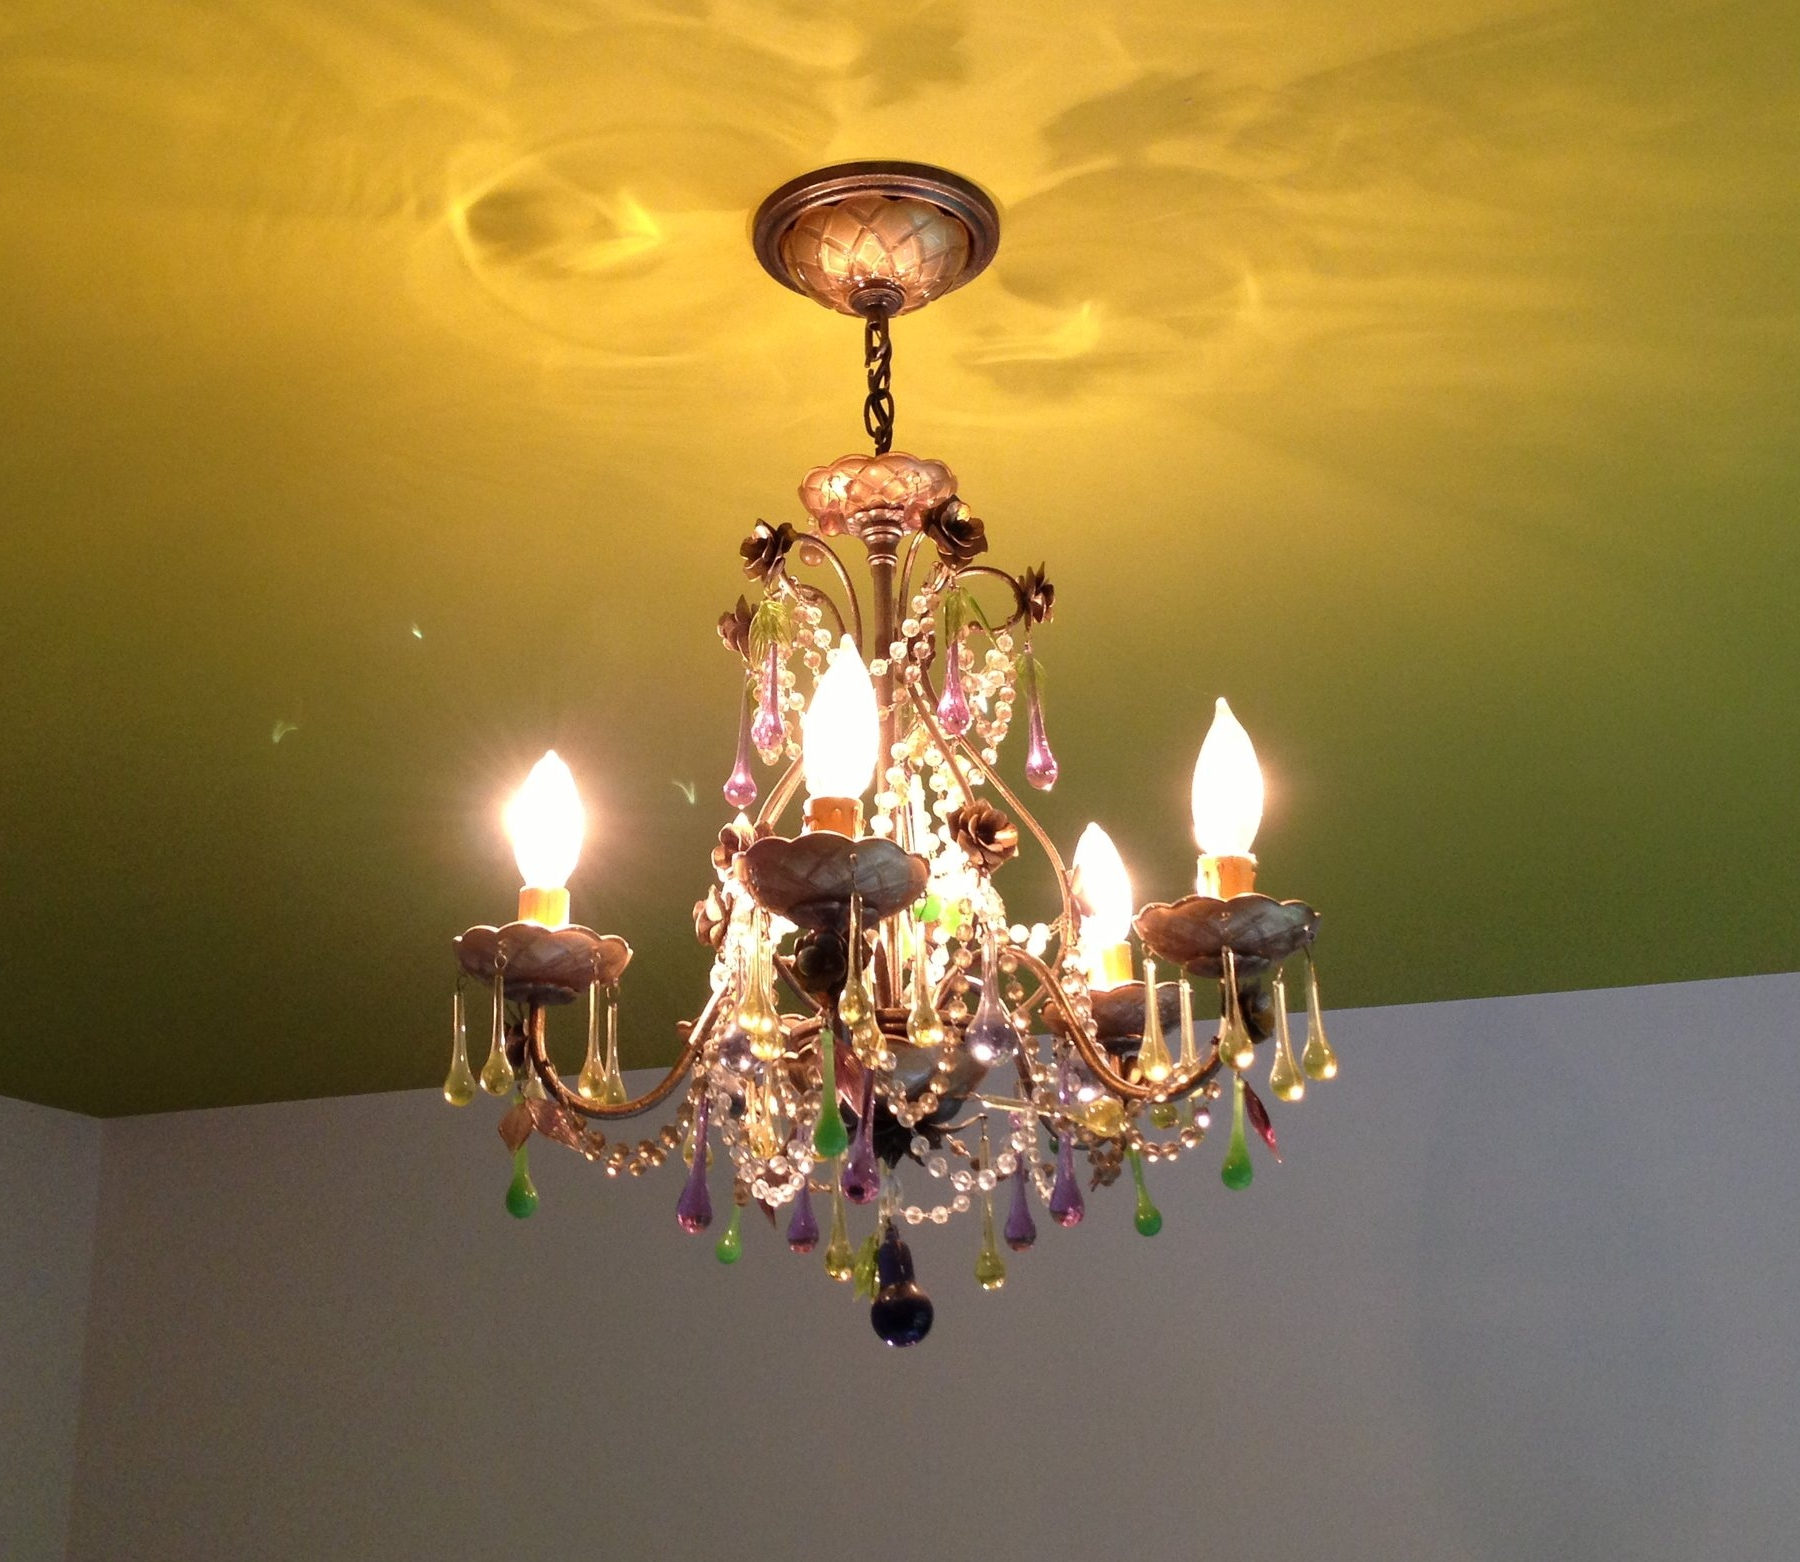 Painted chartreuse ceiling and mini chandelier from Schoenbeck